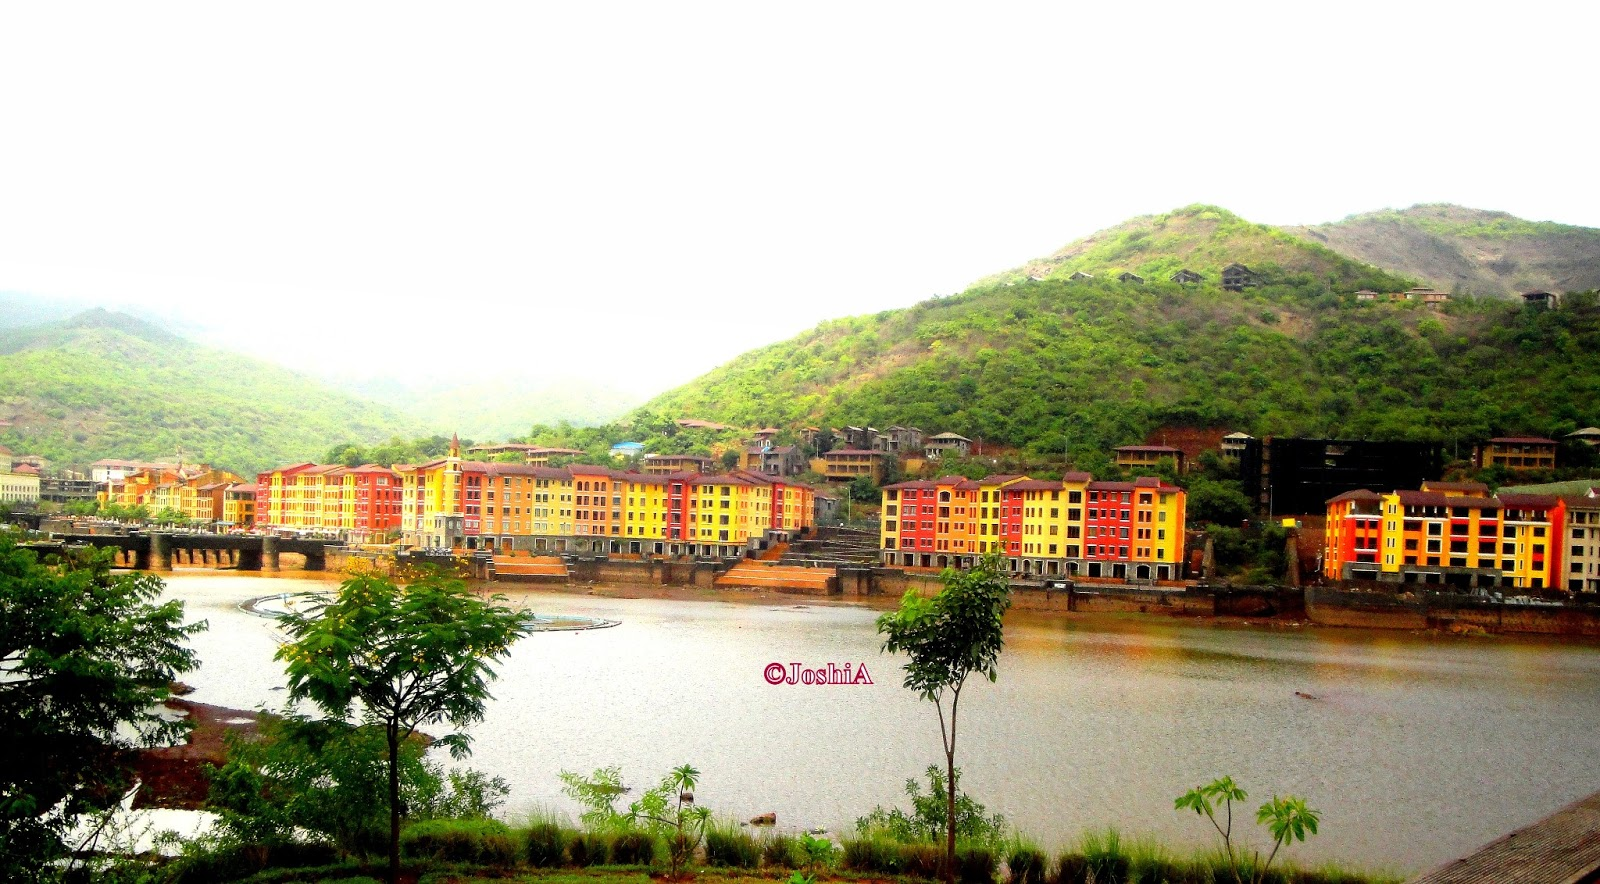 Lavasa India  city photos gallery : Lo and Behold!: India Pune Lavasa